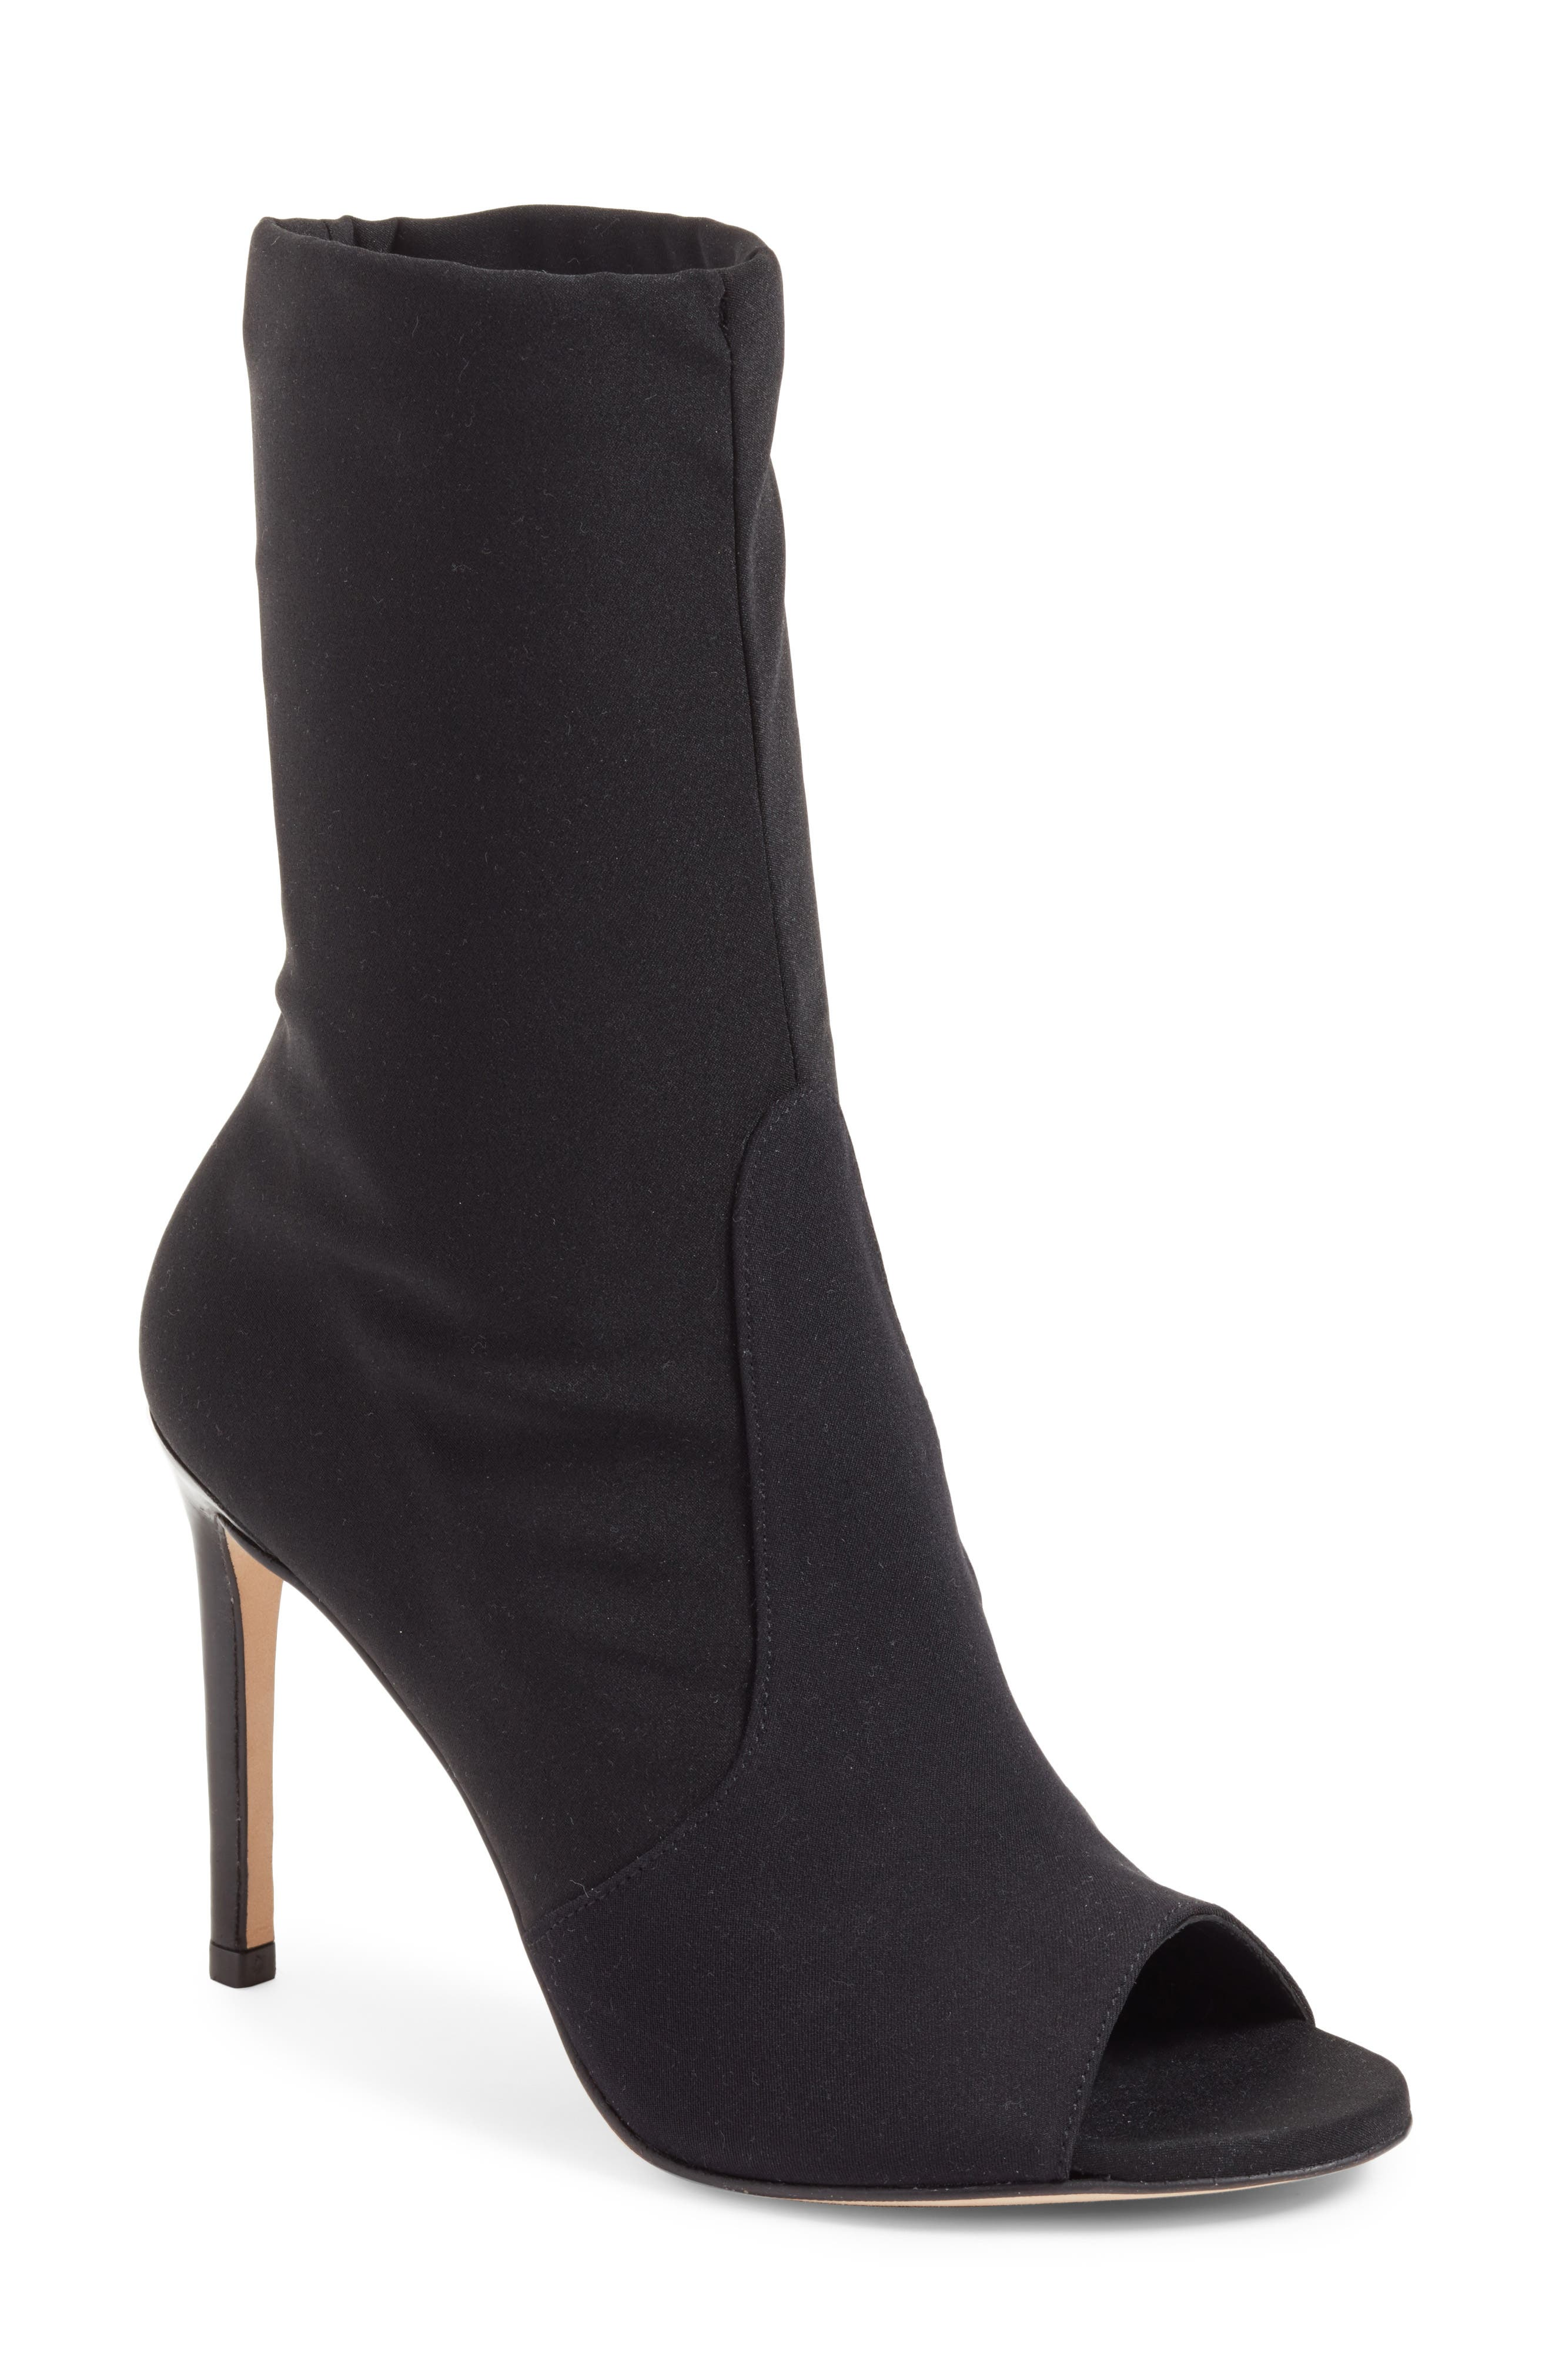 Alternate Image 1 Selected - Stuart Weitzman Hugger Peep Toe Bootie (Women)